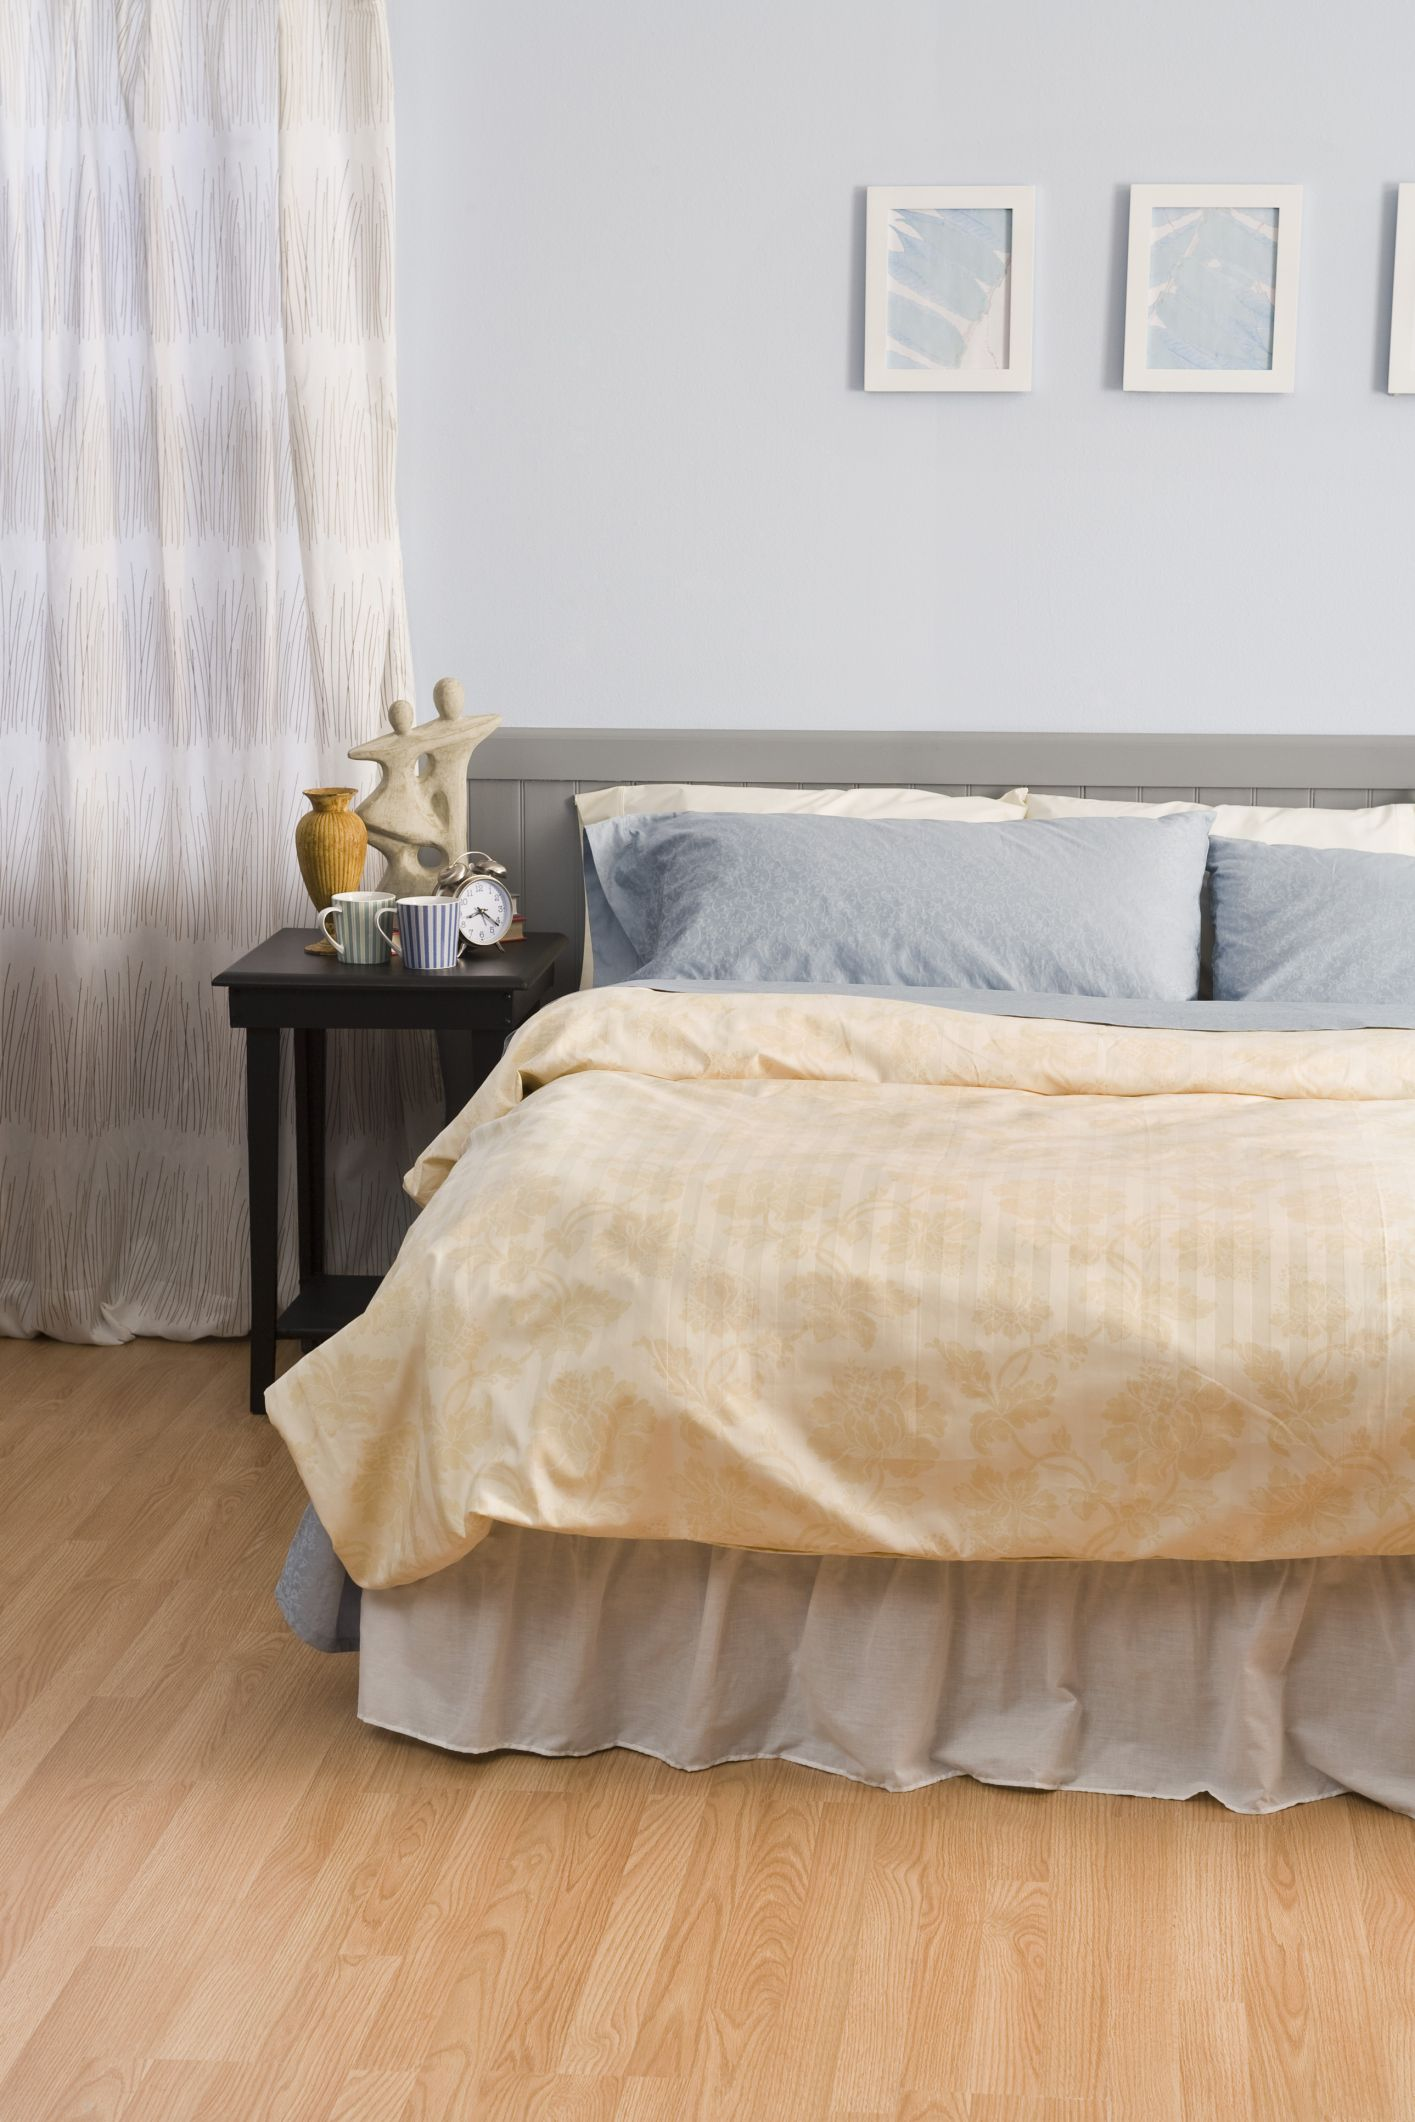 Twin to King Mattress Conversion How to make bed, Bed